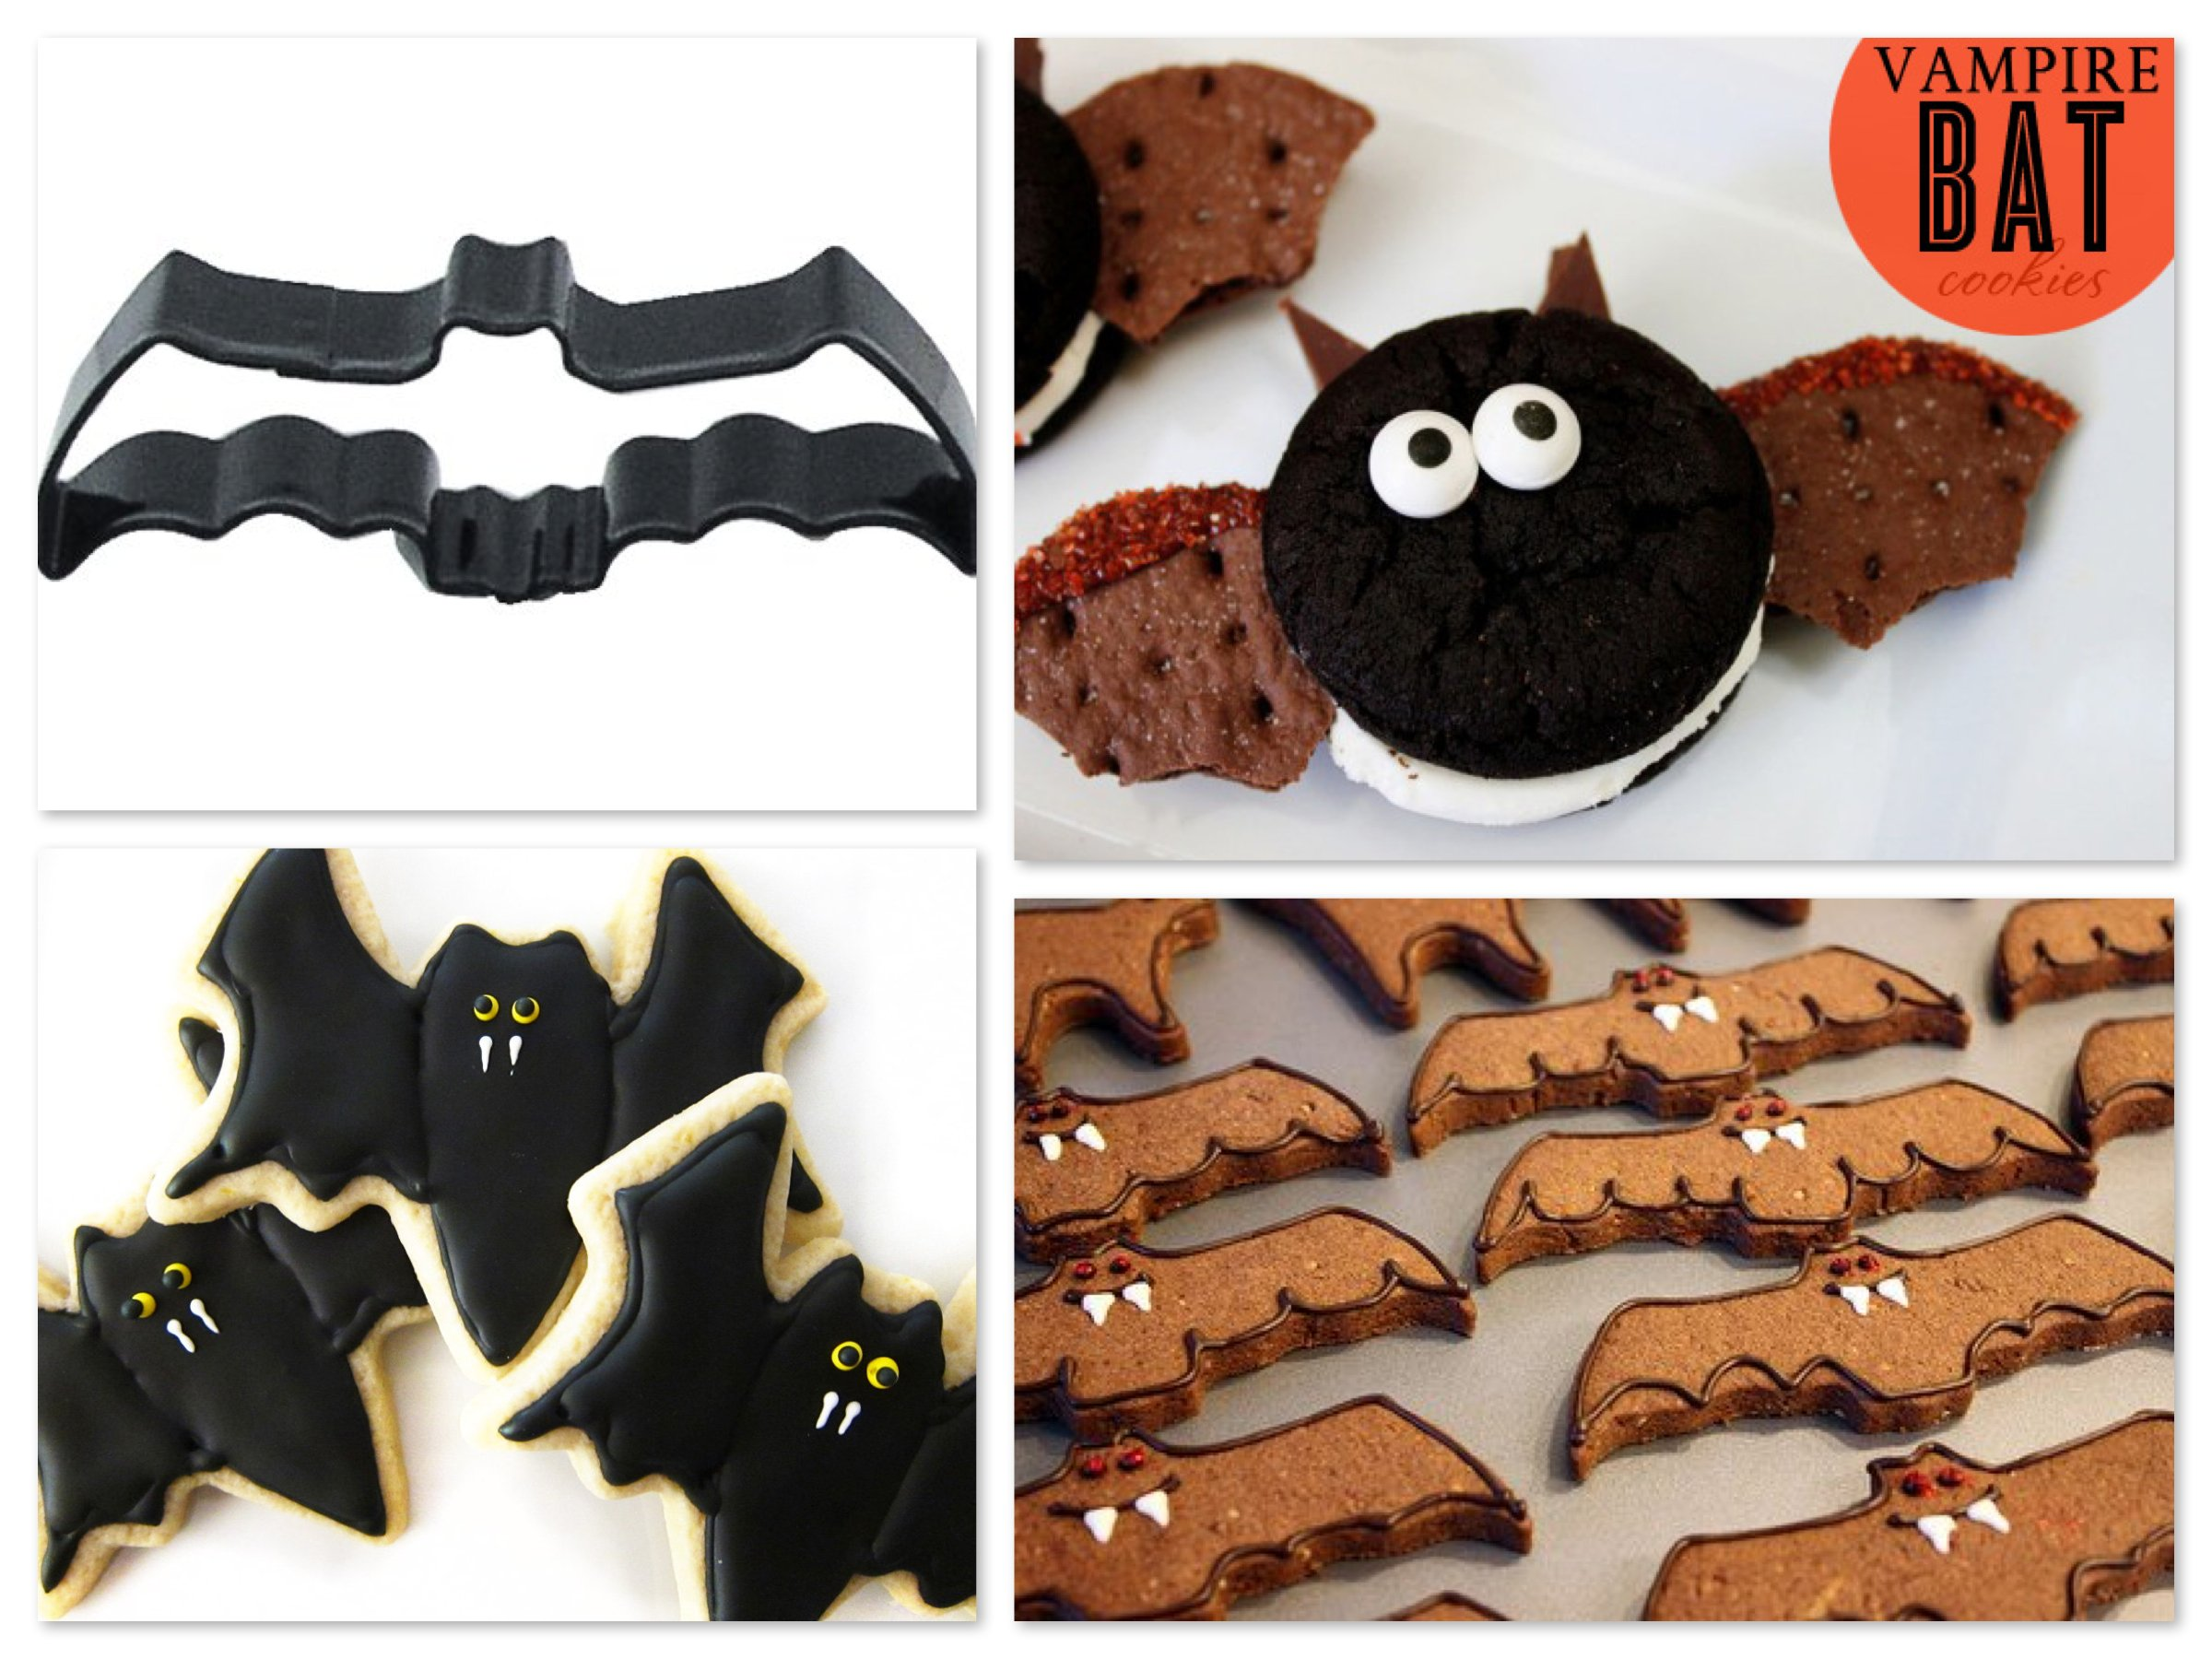 Vampire Bat Halloween Cookies, Halloween in the Classroom